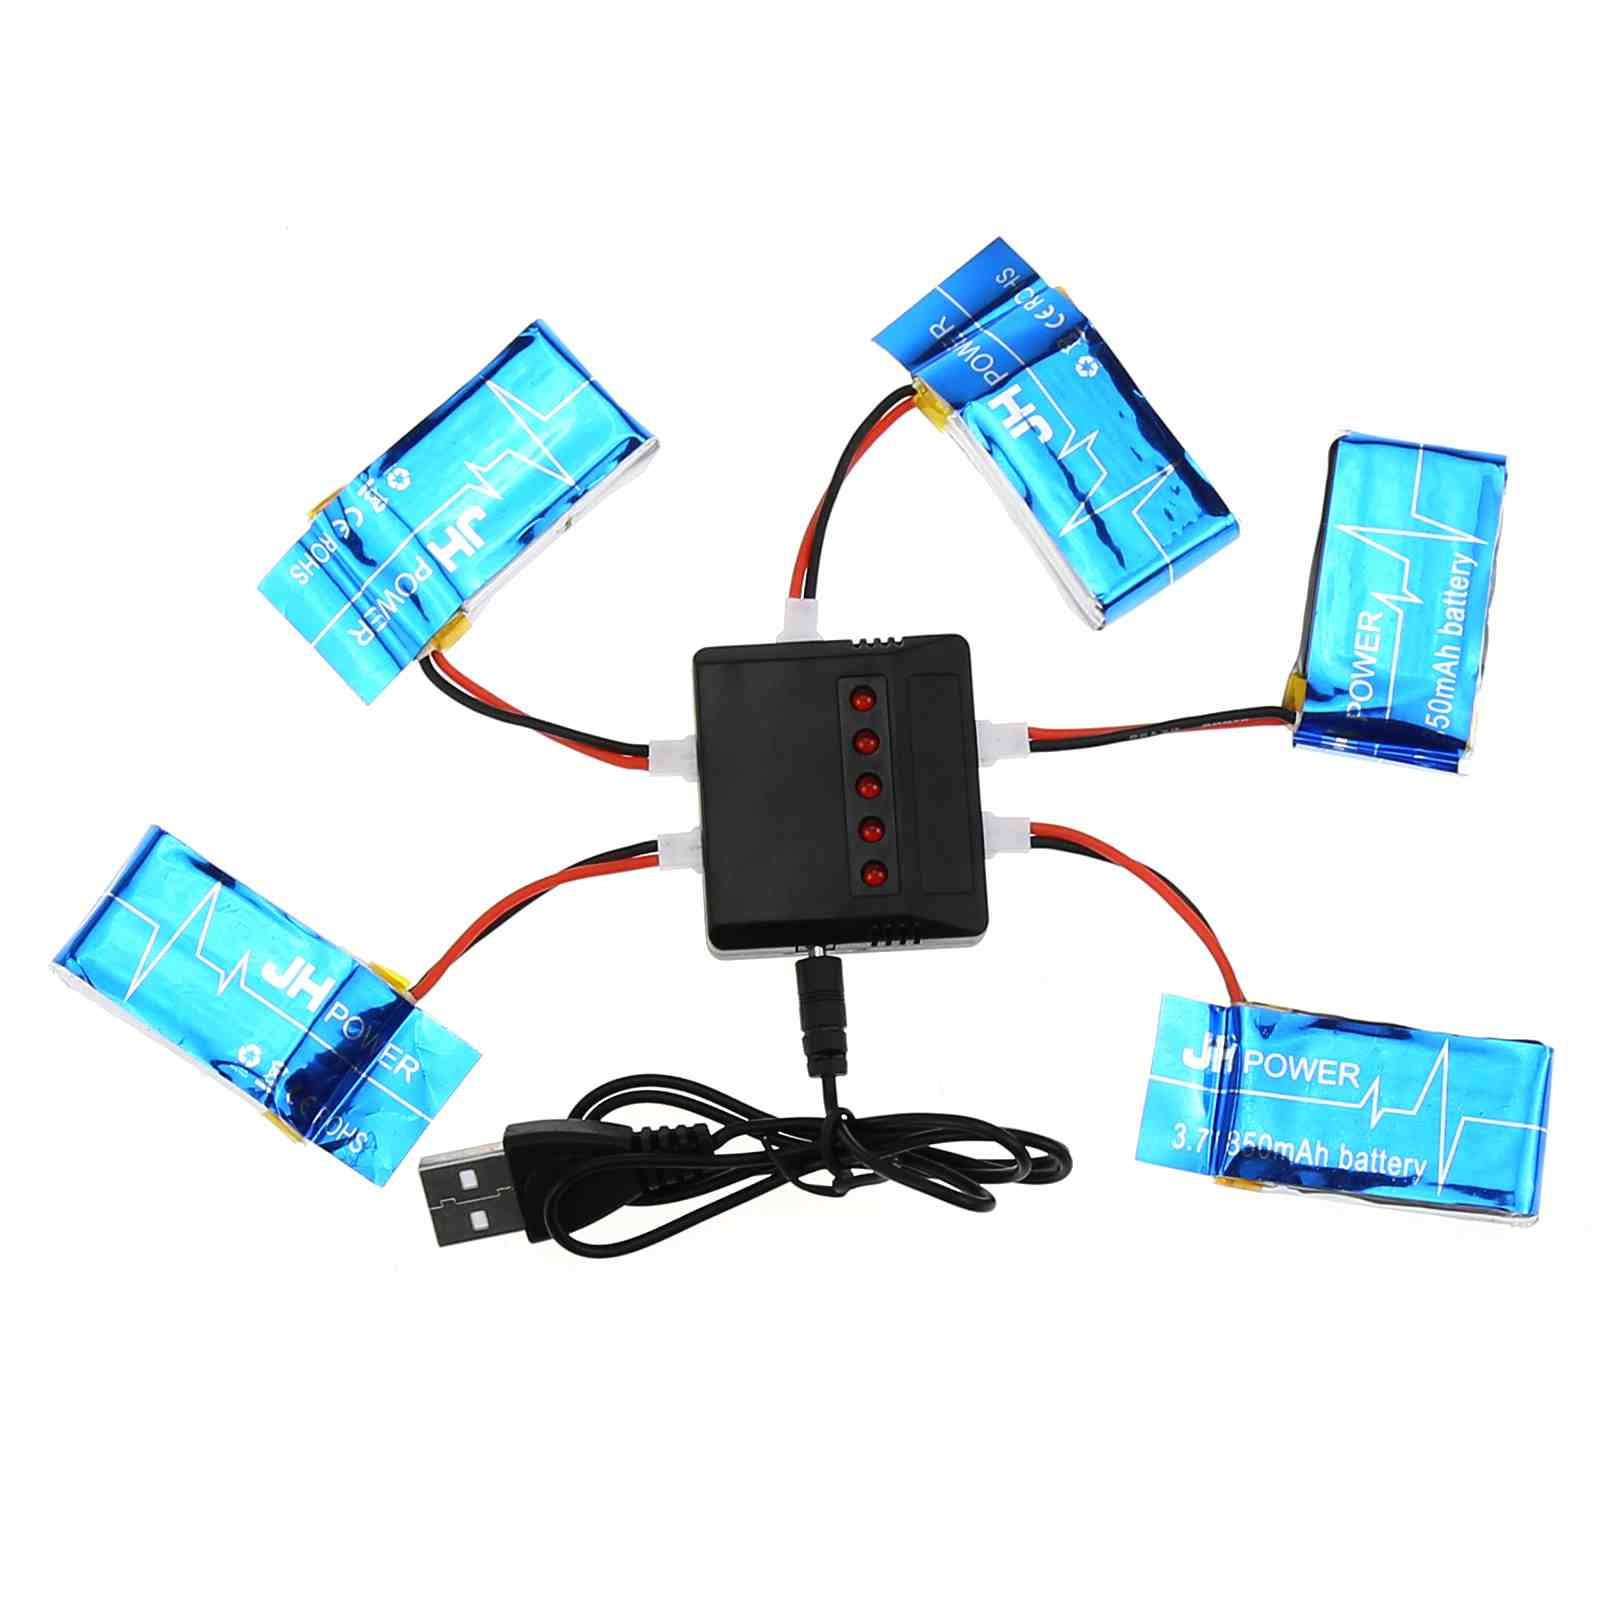 5 in 1 Balance Charger 5 Spare Li Poly Batteries 3.7V 850 mAh for X5C-1/ X5SC / X5SW RC Drone QuadCopter